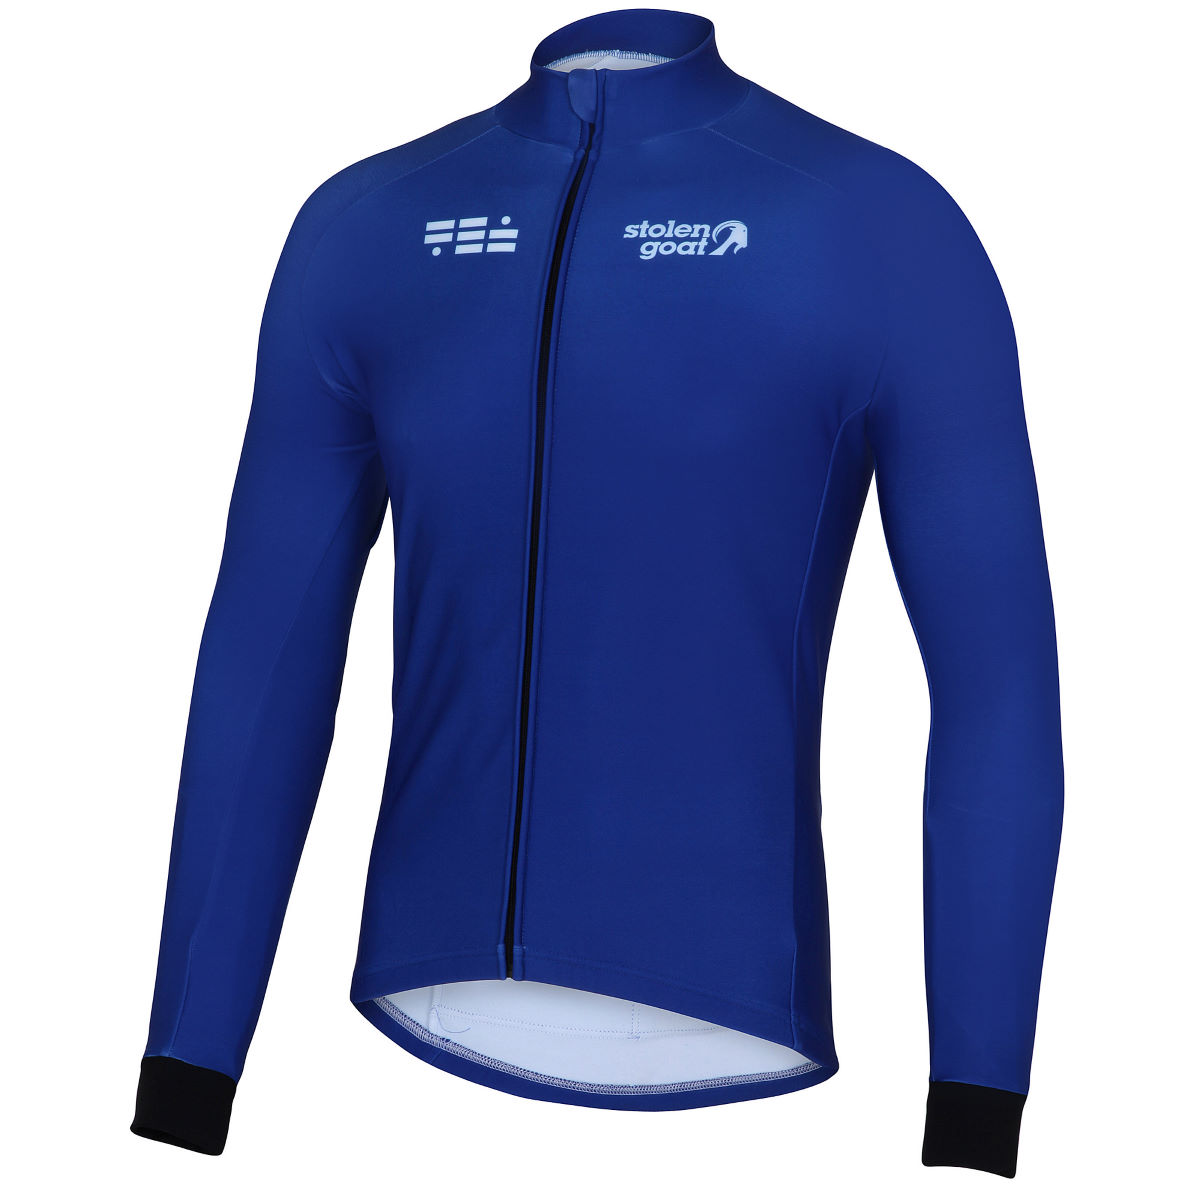 Stolen Goat Orkaan Everyday Long Sleeve Jersey - Extra Extra Large